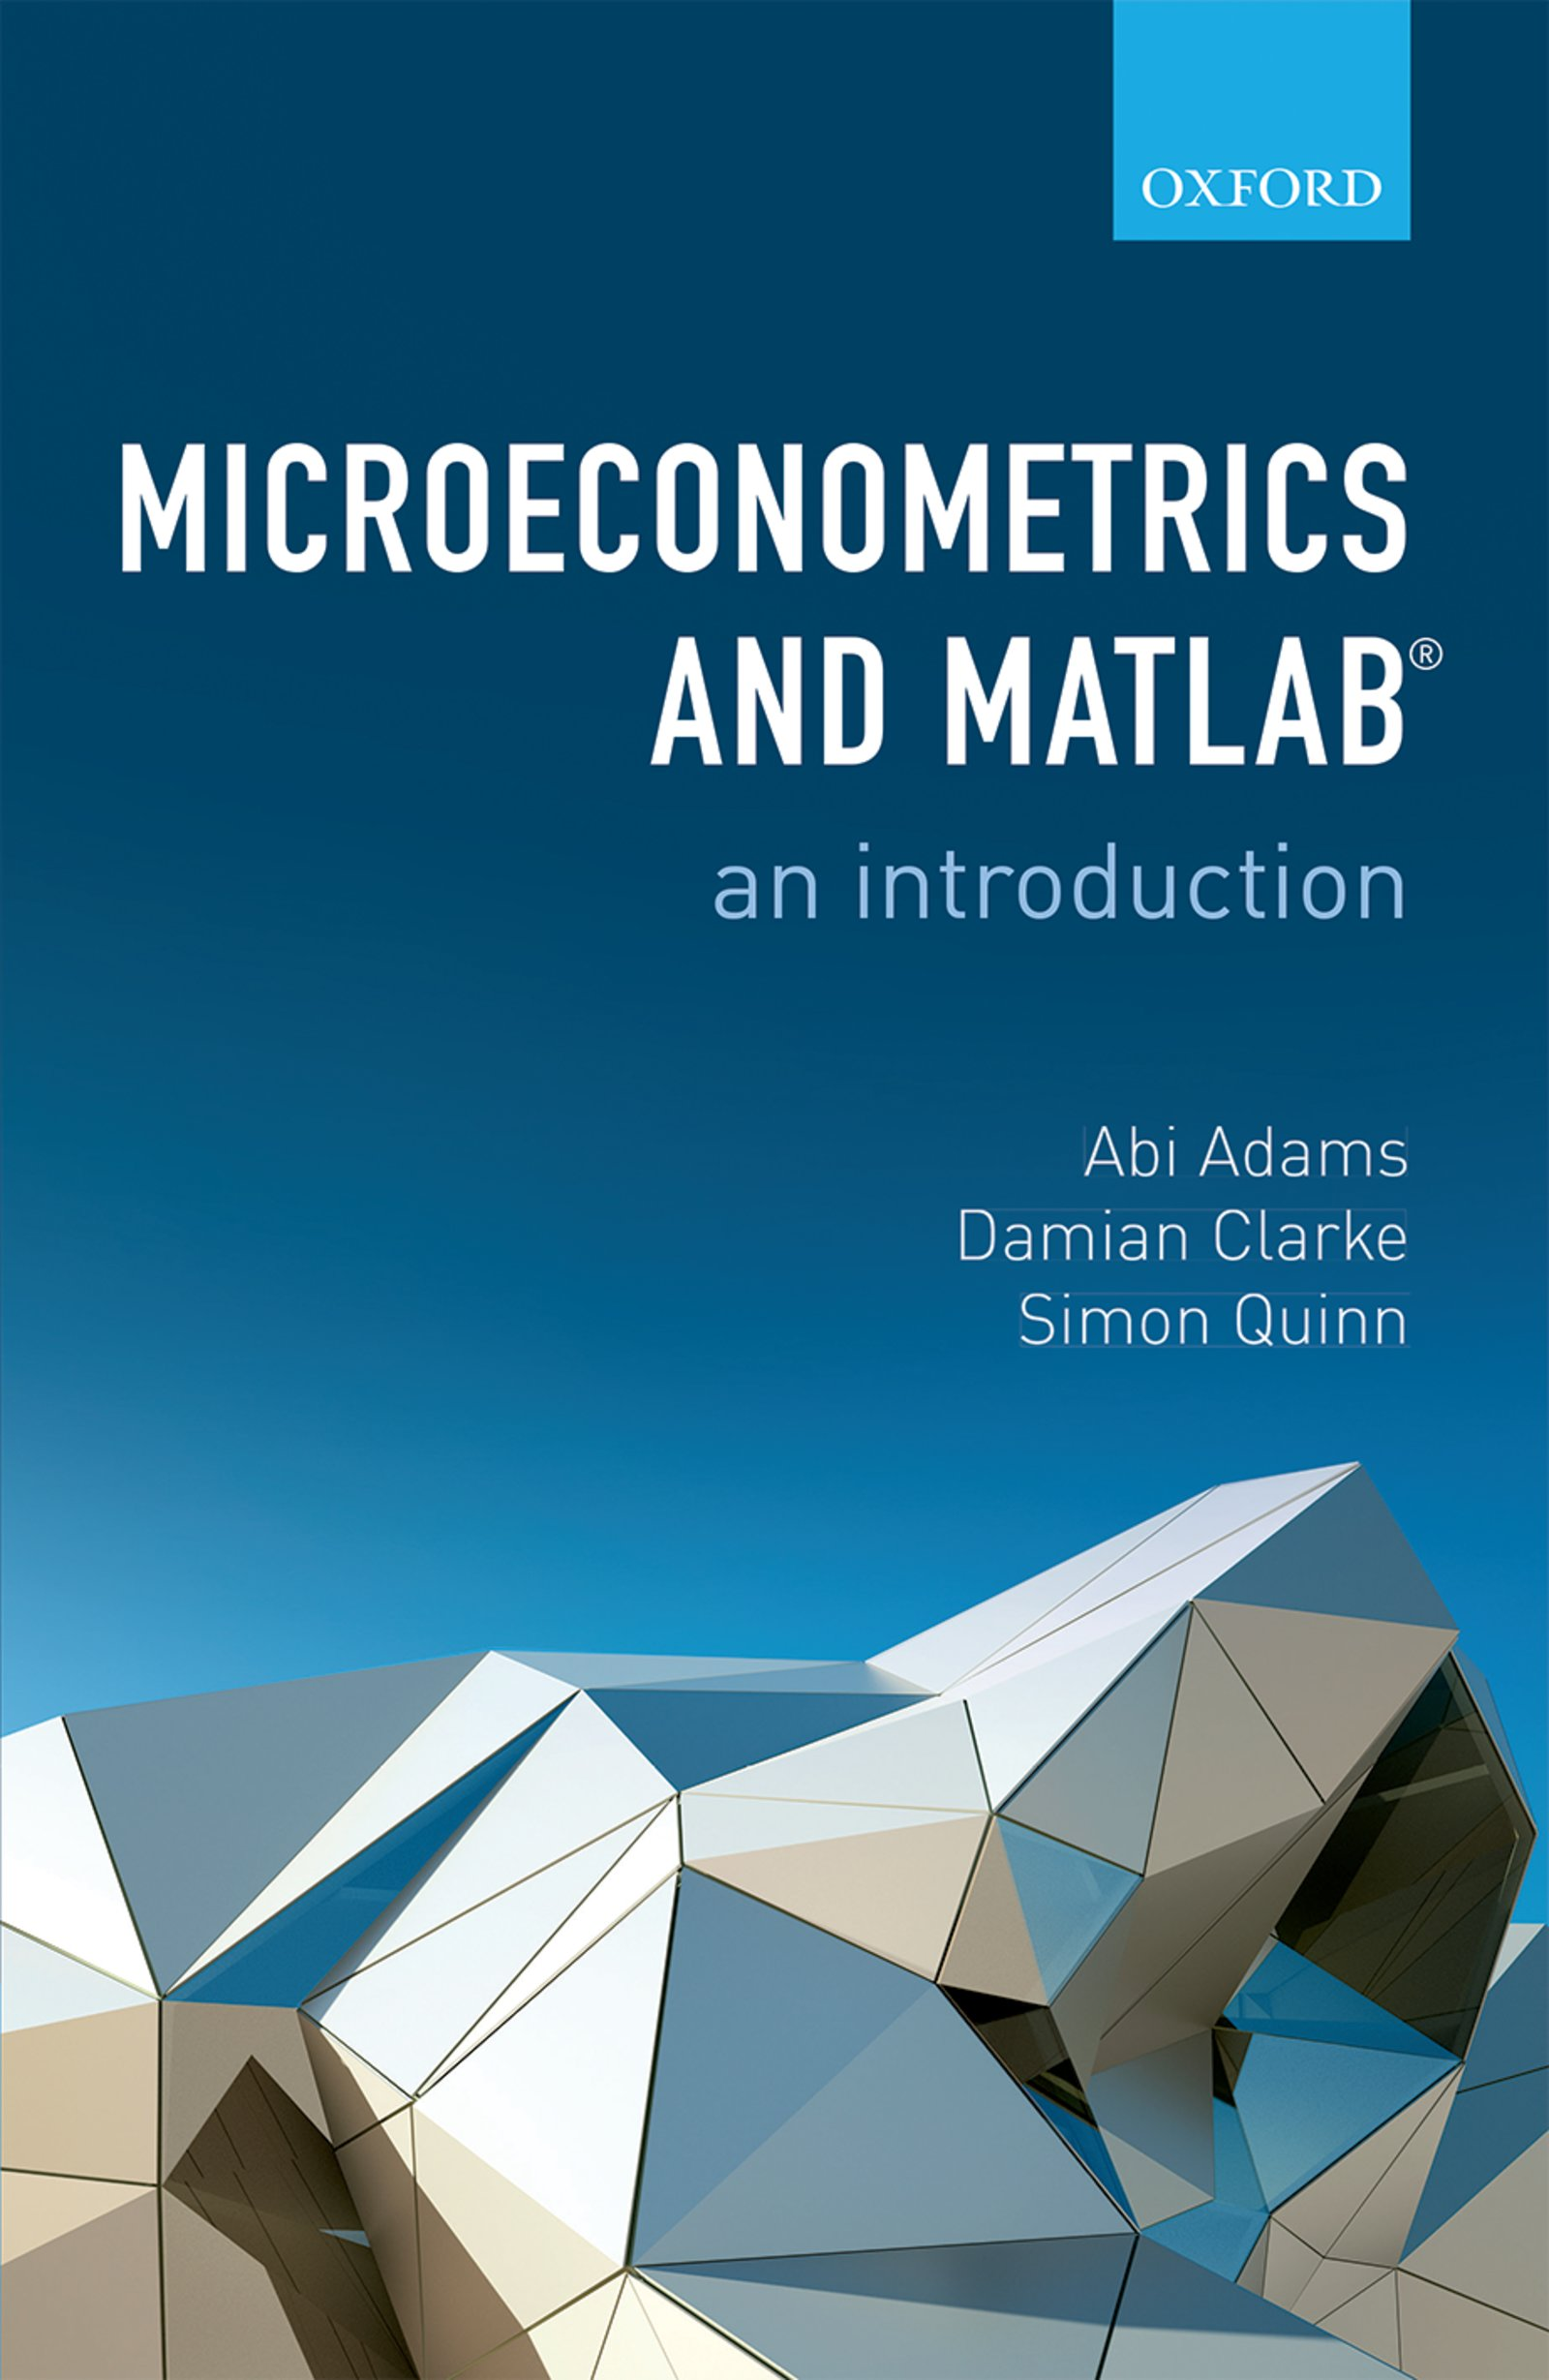 Download Ebook Microeconometrics and MATLAB: An Introduction by Abi Adams Pdf